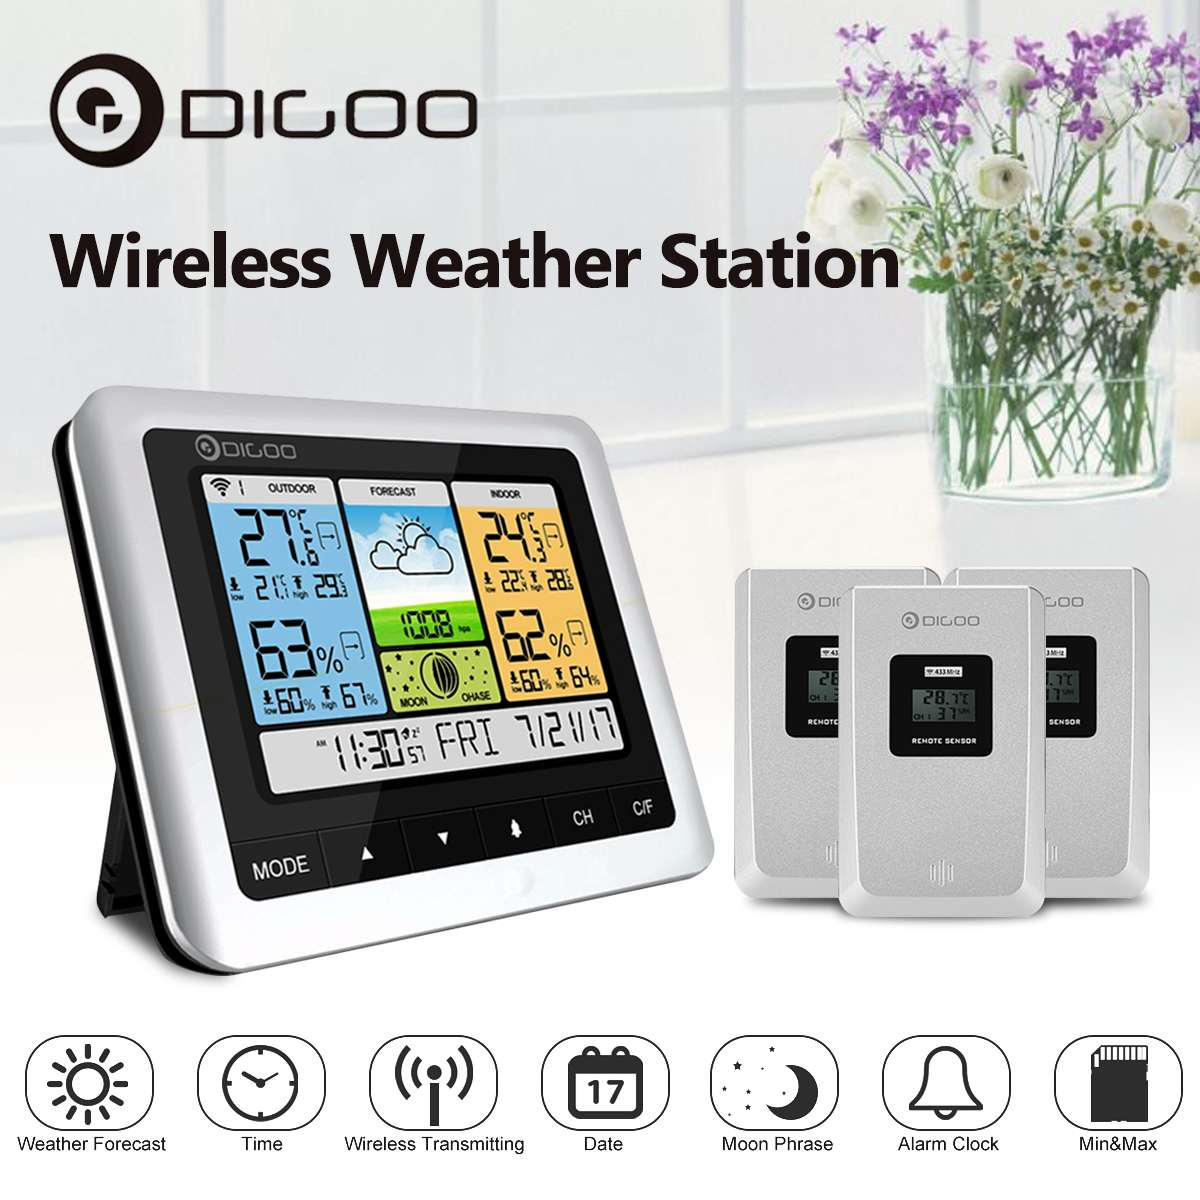 Digoo DG TH8888 Weather Station White Color Wireless Home Digital Thermometer Humidity Meter USB Outdoor Forecast Sensor Clock